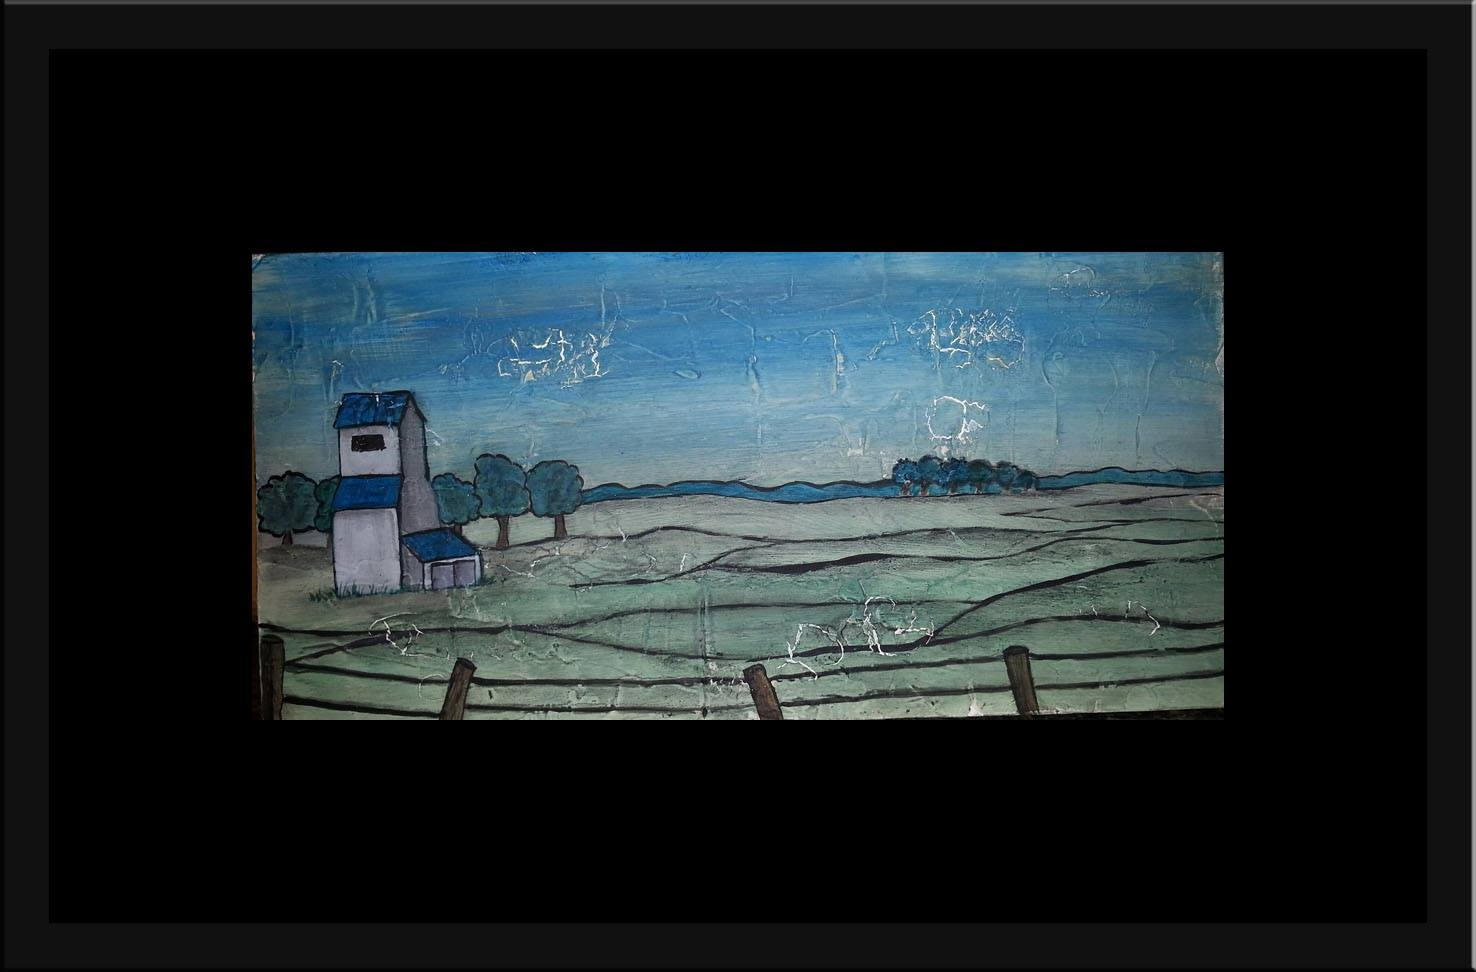 """When I Think of Home"" [2015] Mixed media on board. 13.5"" x 6.5"" (image). 22.5"" x 15.5"" (framed) SOLD"